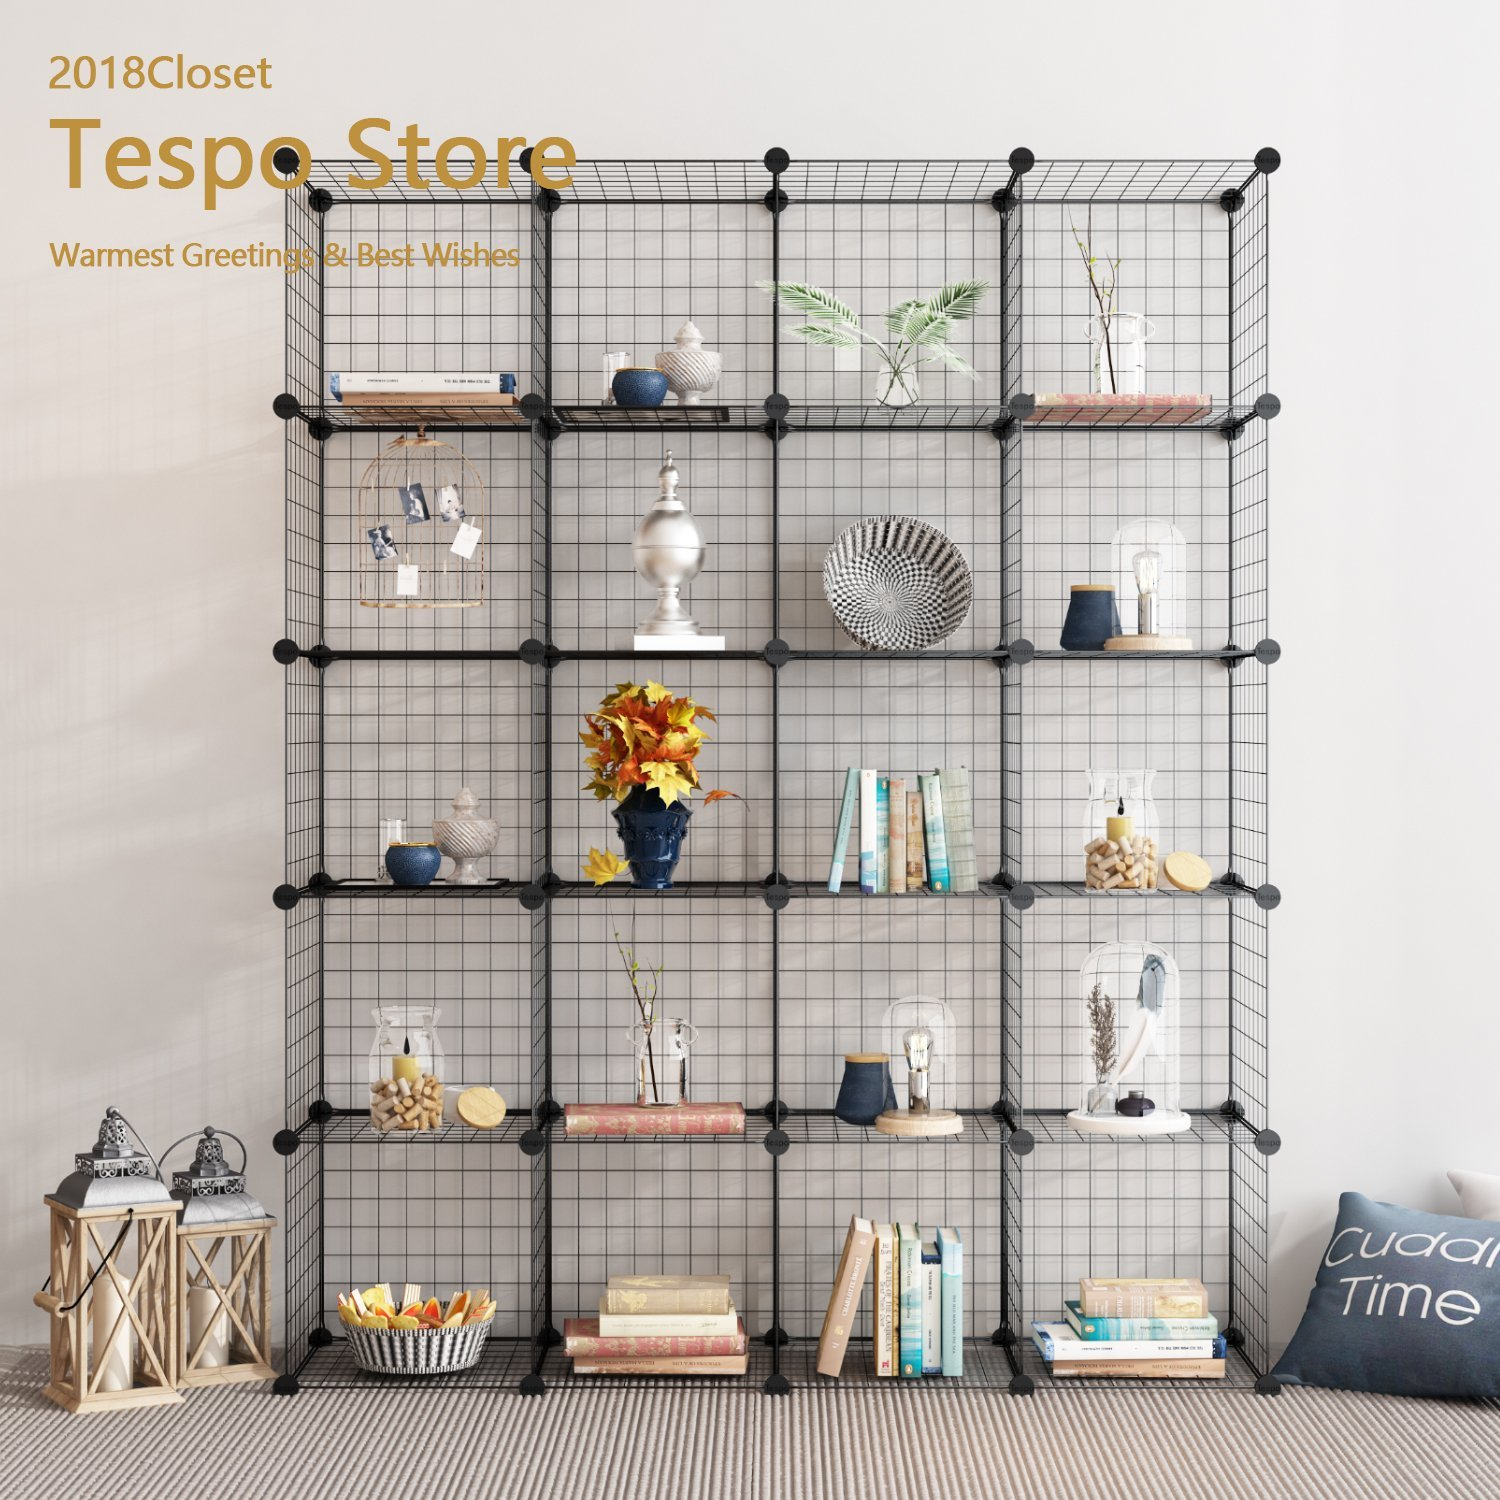 Best Closet Organizer Systems In 2018 Contractorculture